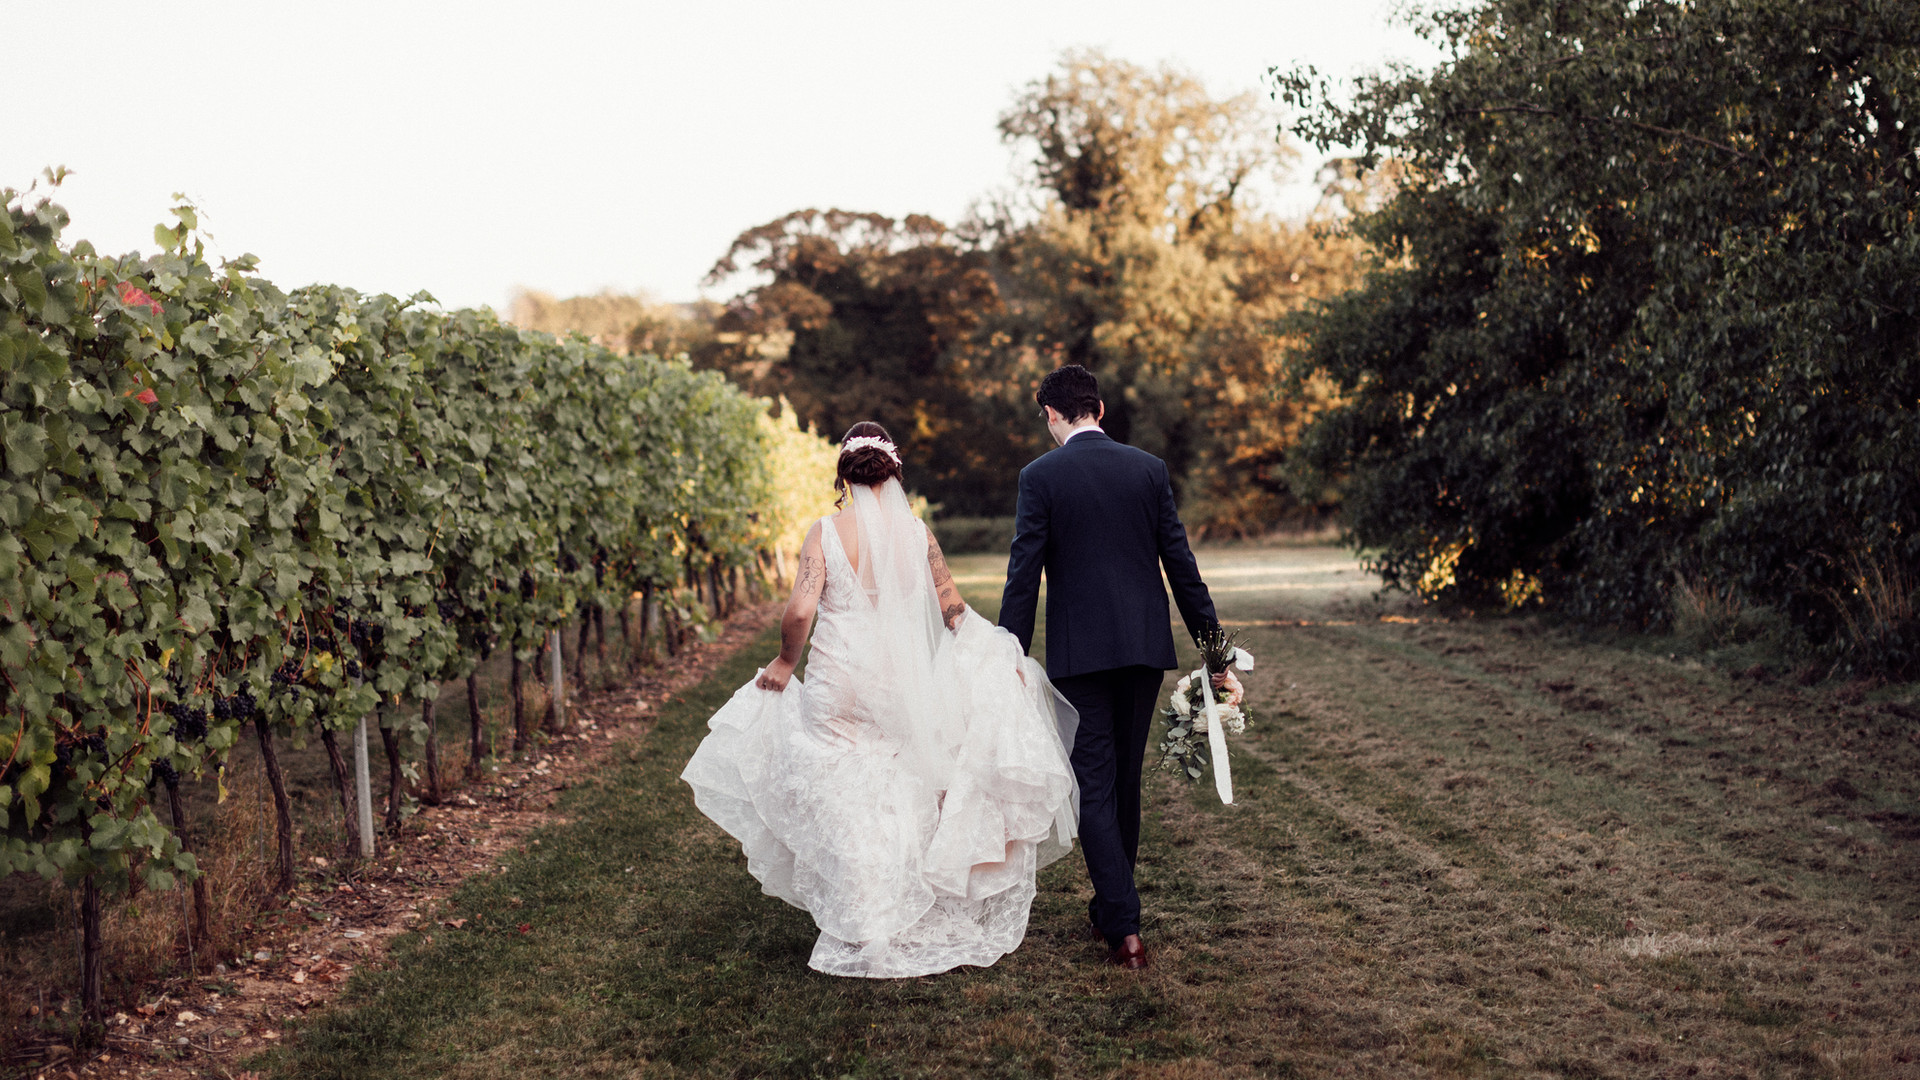 Bride and Groom at Tuffon Hall Vineyard.